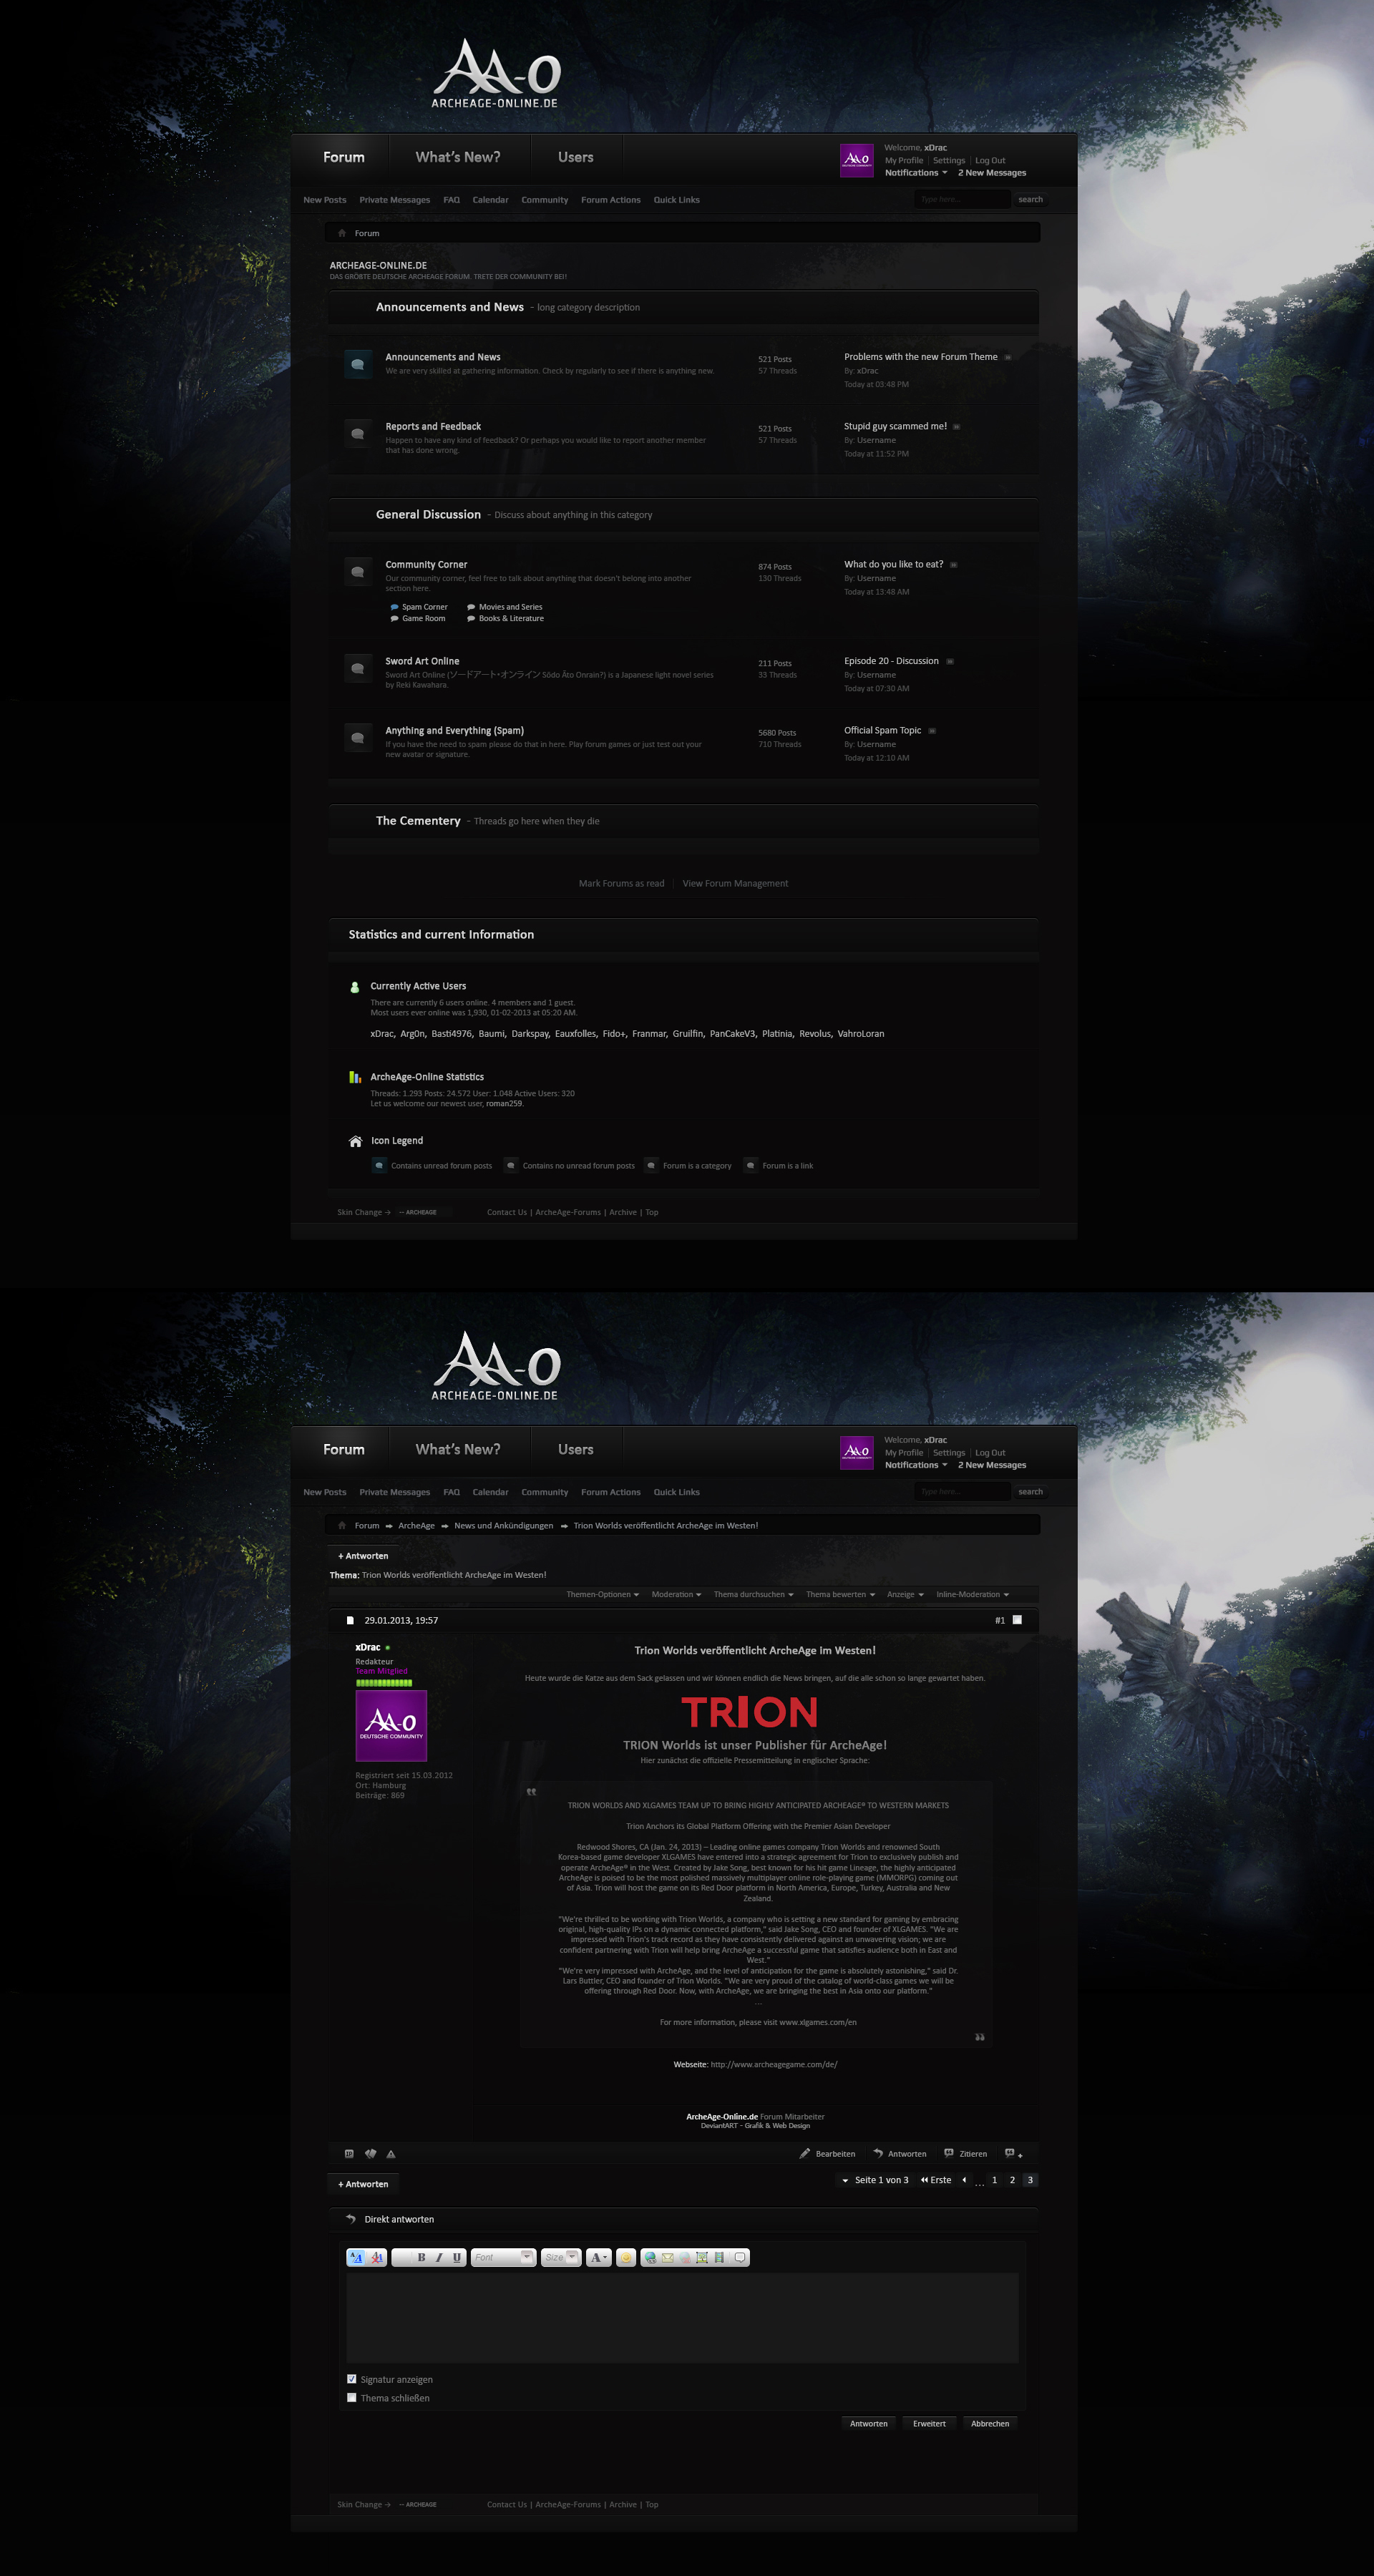 archeage_online_forum_design_by_xdrac-d5